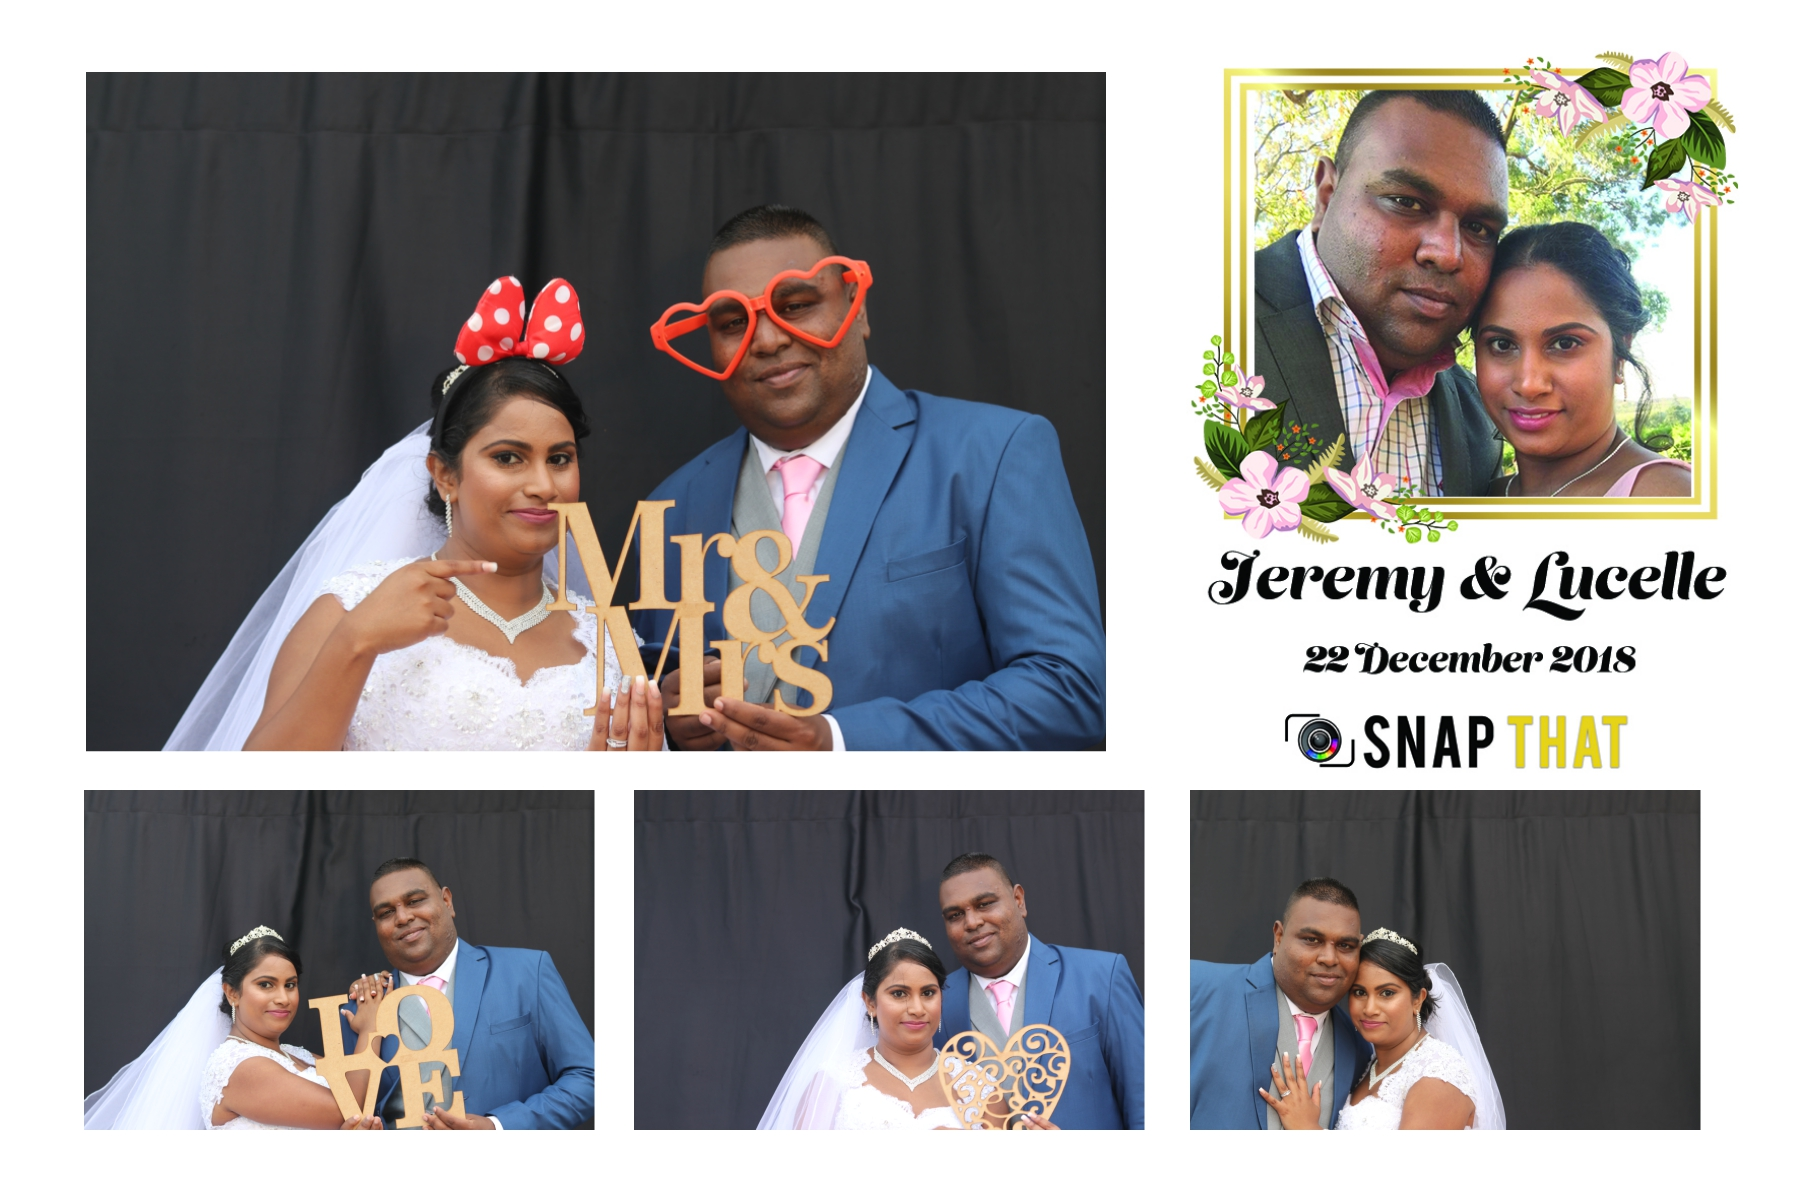 Jeremy & Lucelle Wedding Photobooth